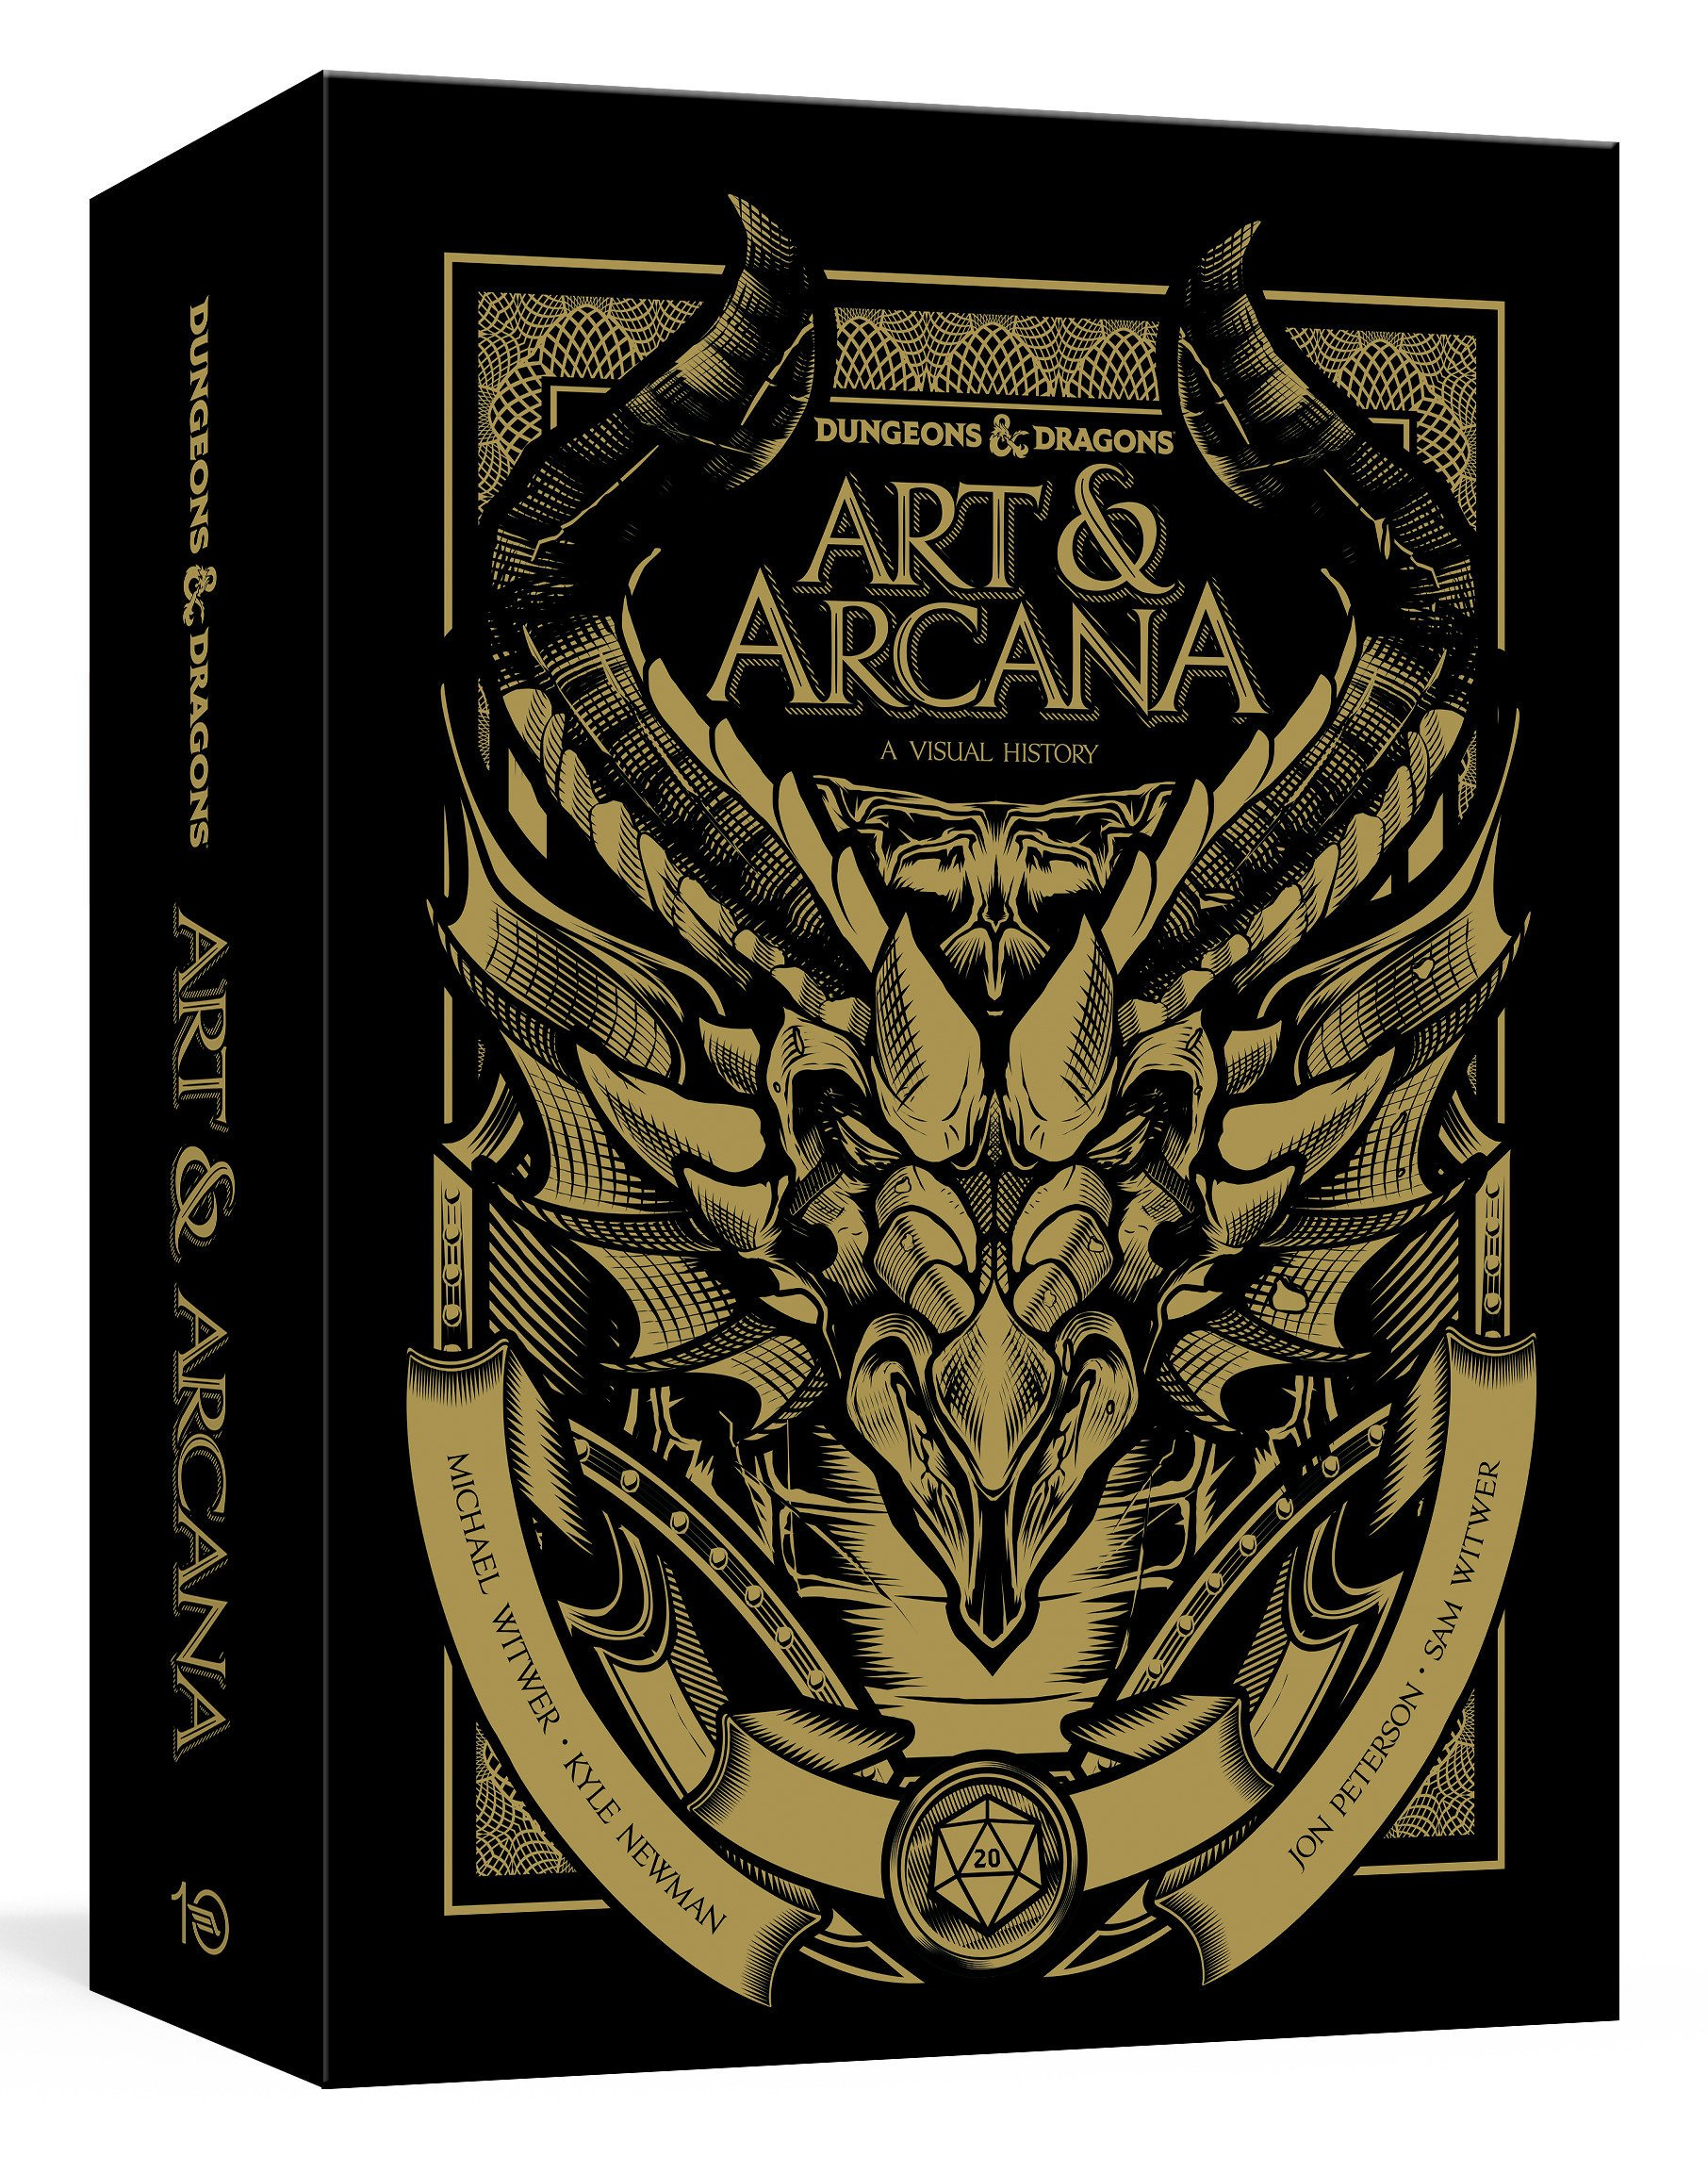 Dungeons and Dragons Art and Arcana [Special Edition, Boxed Book & Ephemera Set]: A Visual History